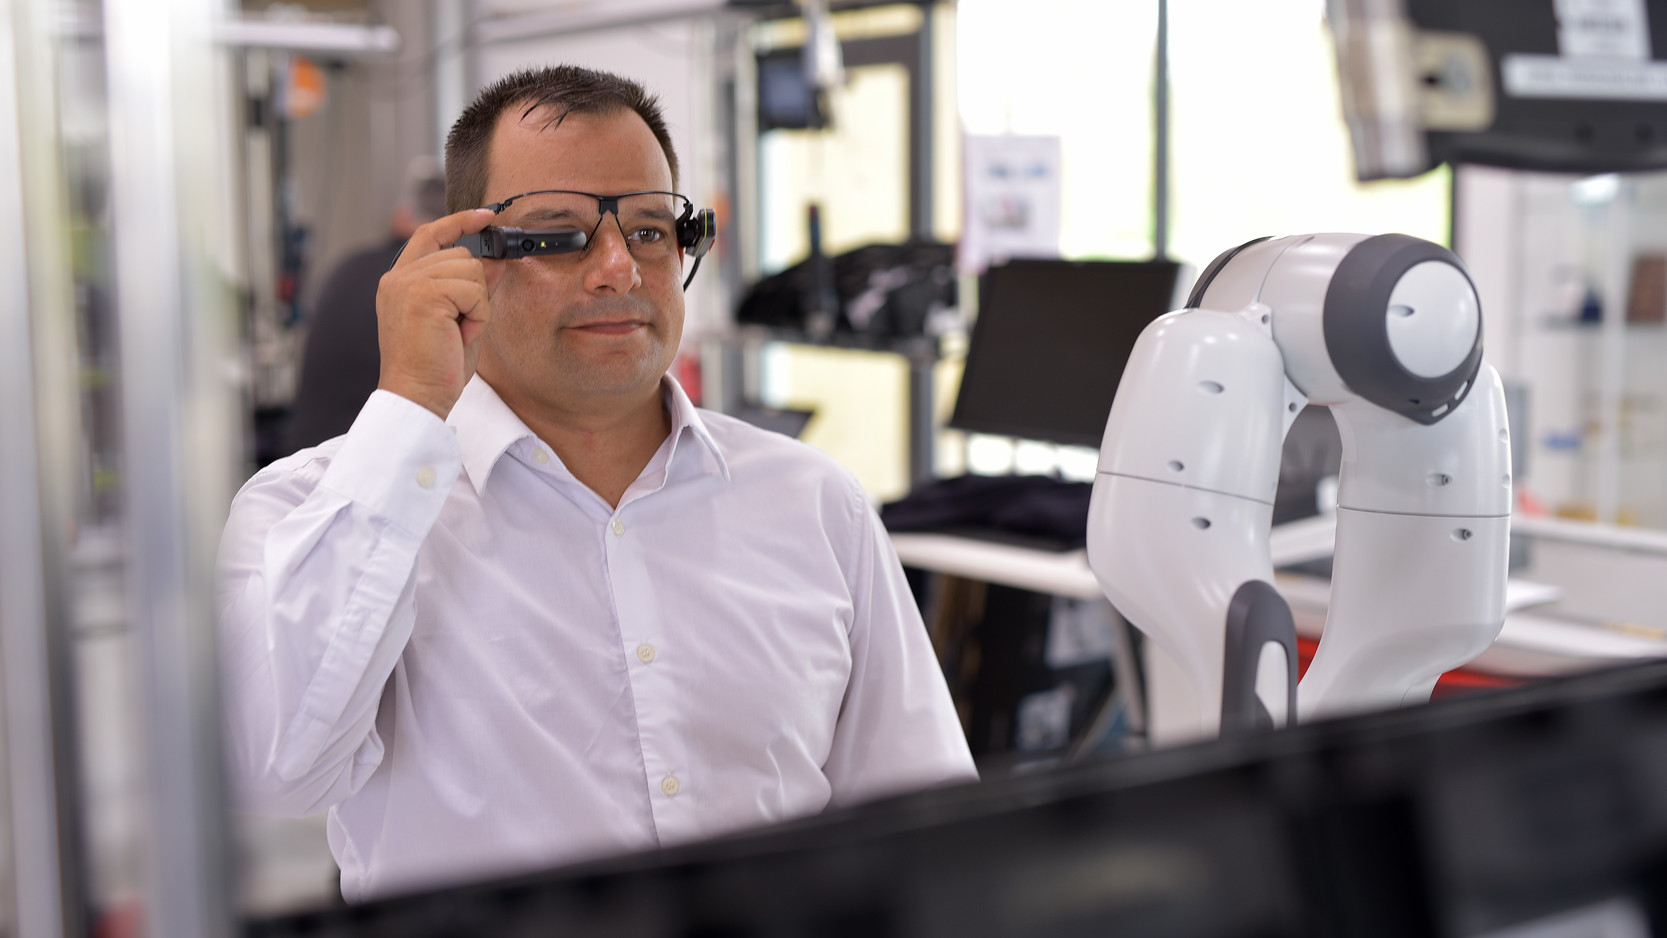 Informatische Assistenzsysteme - Smart Glasses